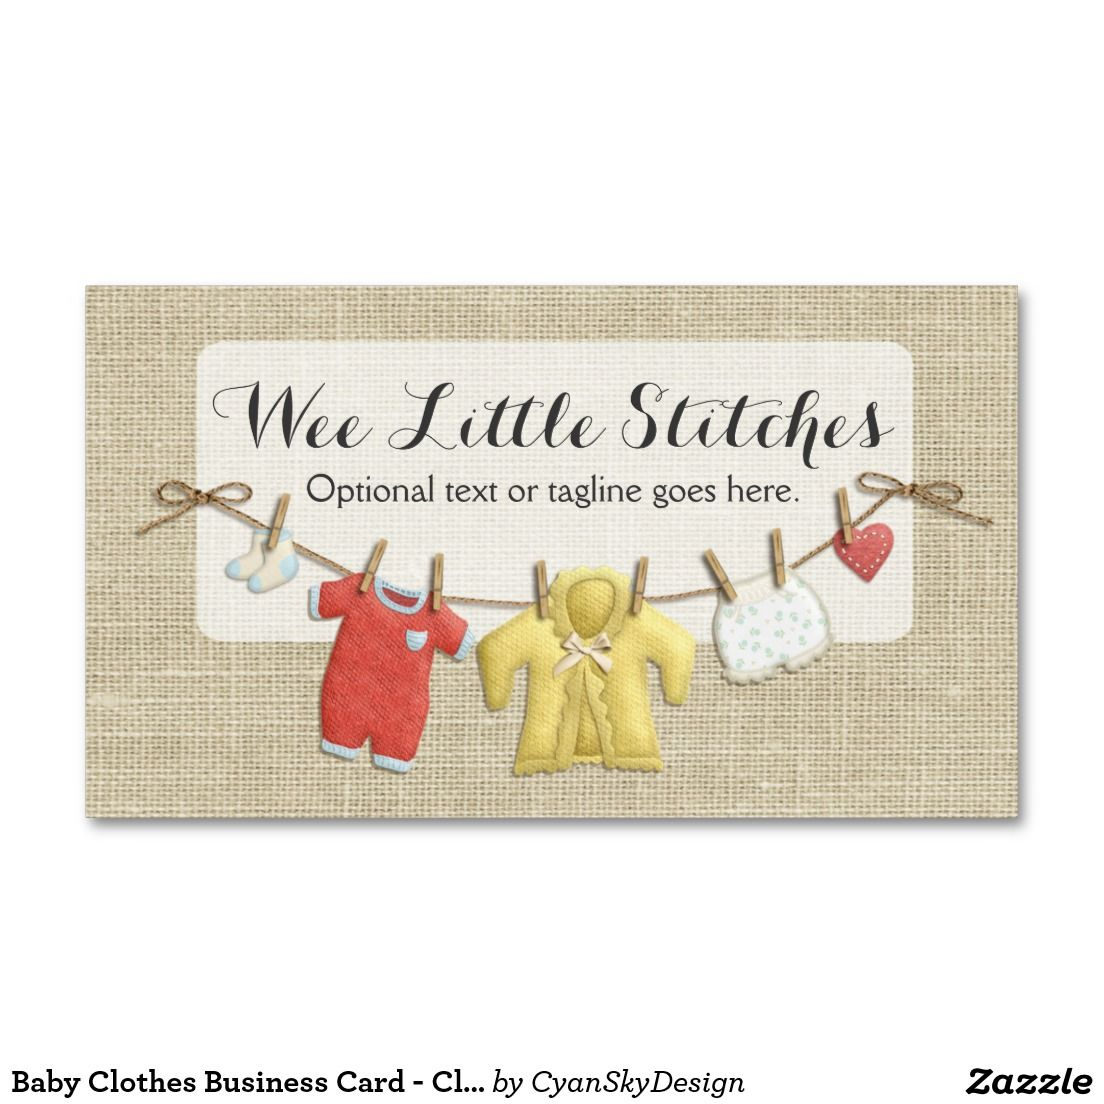 Baby Clothes Business Card Clothesline on Burlap